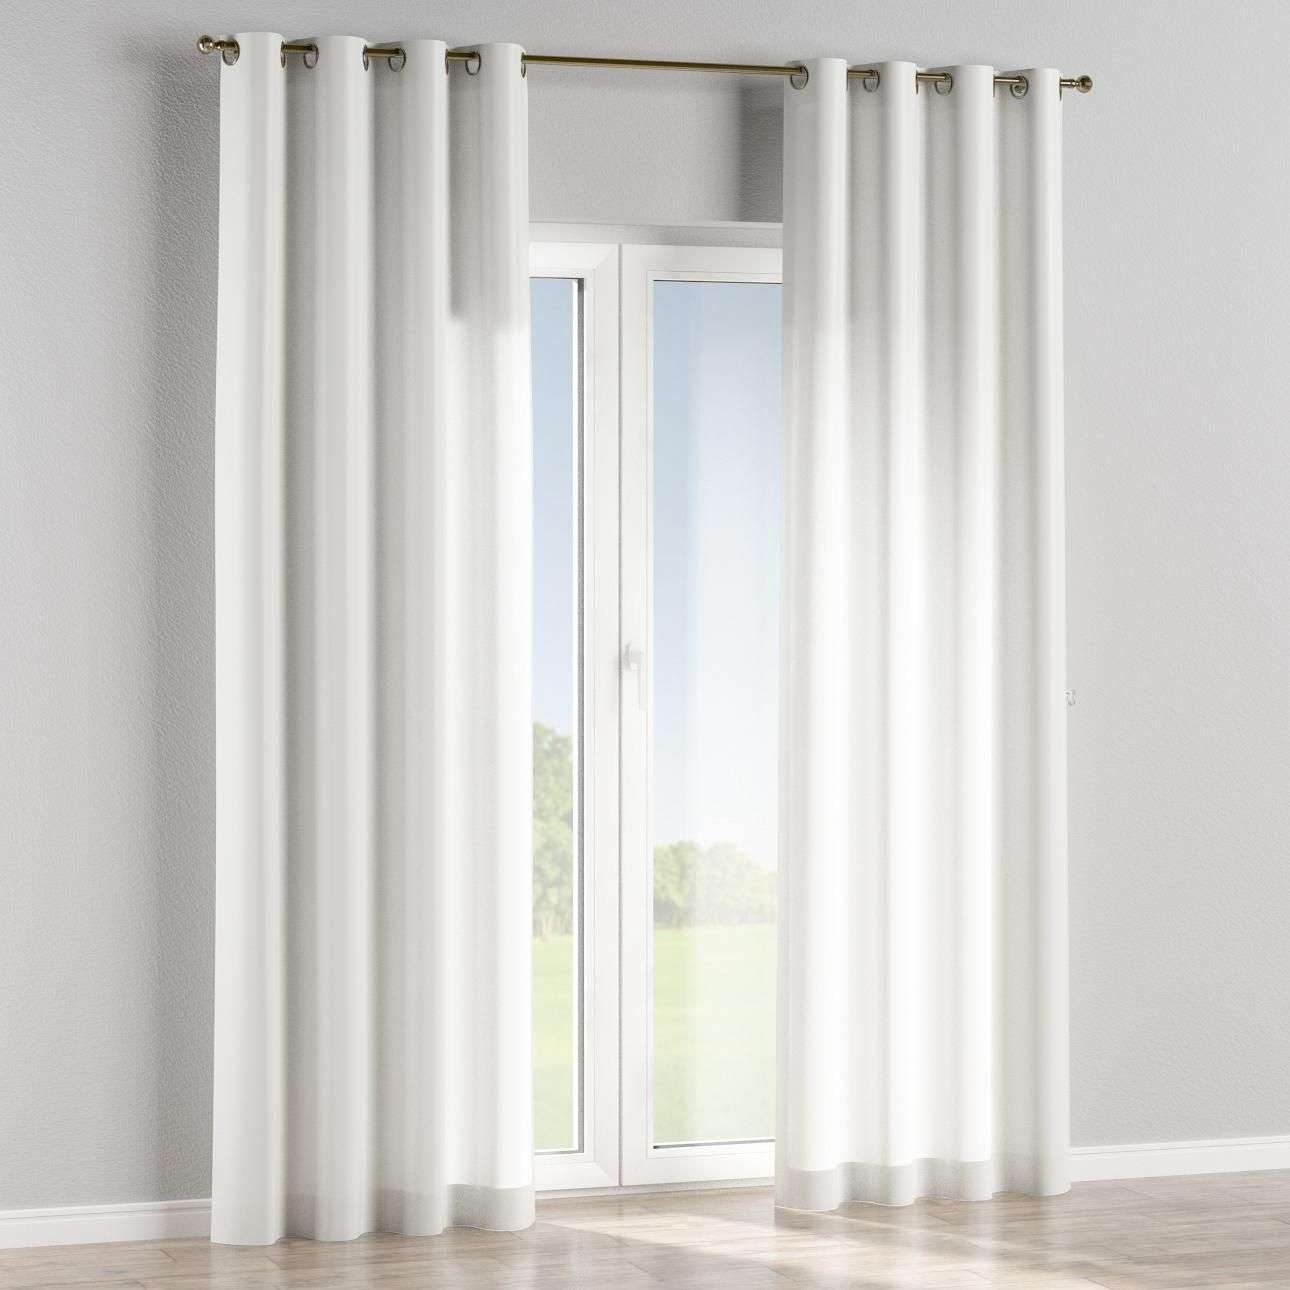 Eyelet curtains in collection Milano, fabric: 150-27